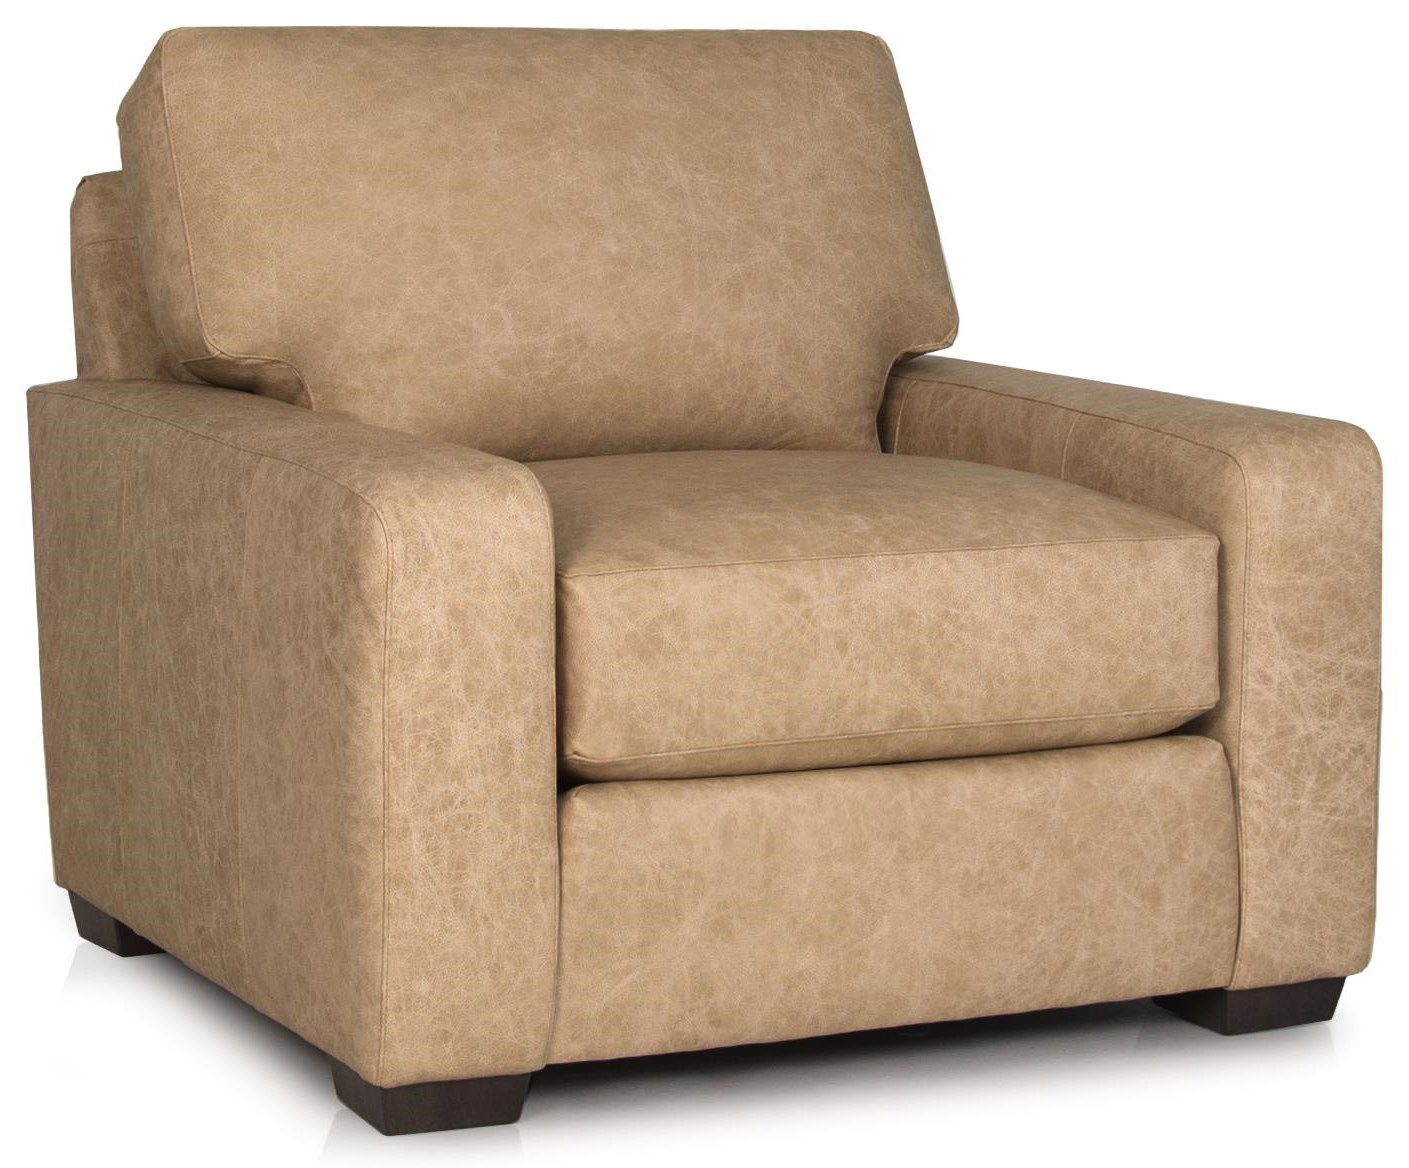 Greencastle Chair by Smith Brothers at Crowley Furniture & Mattress